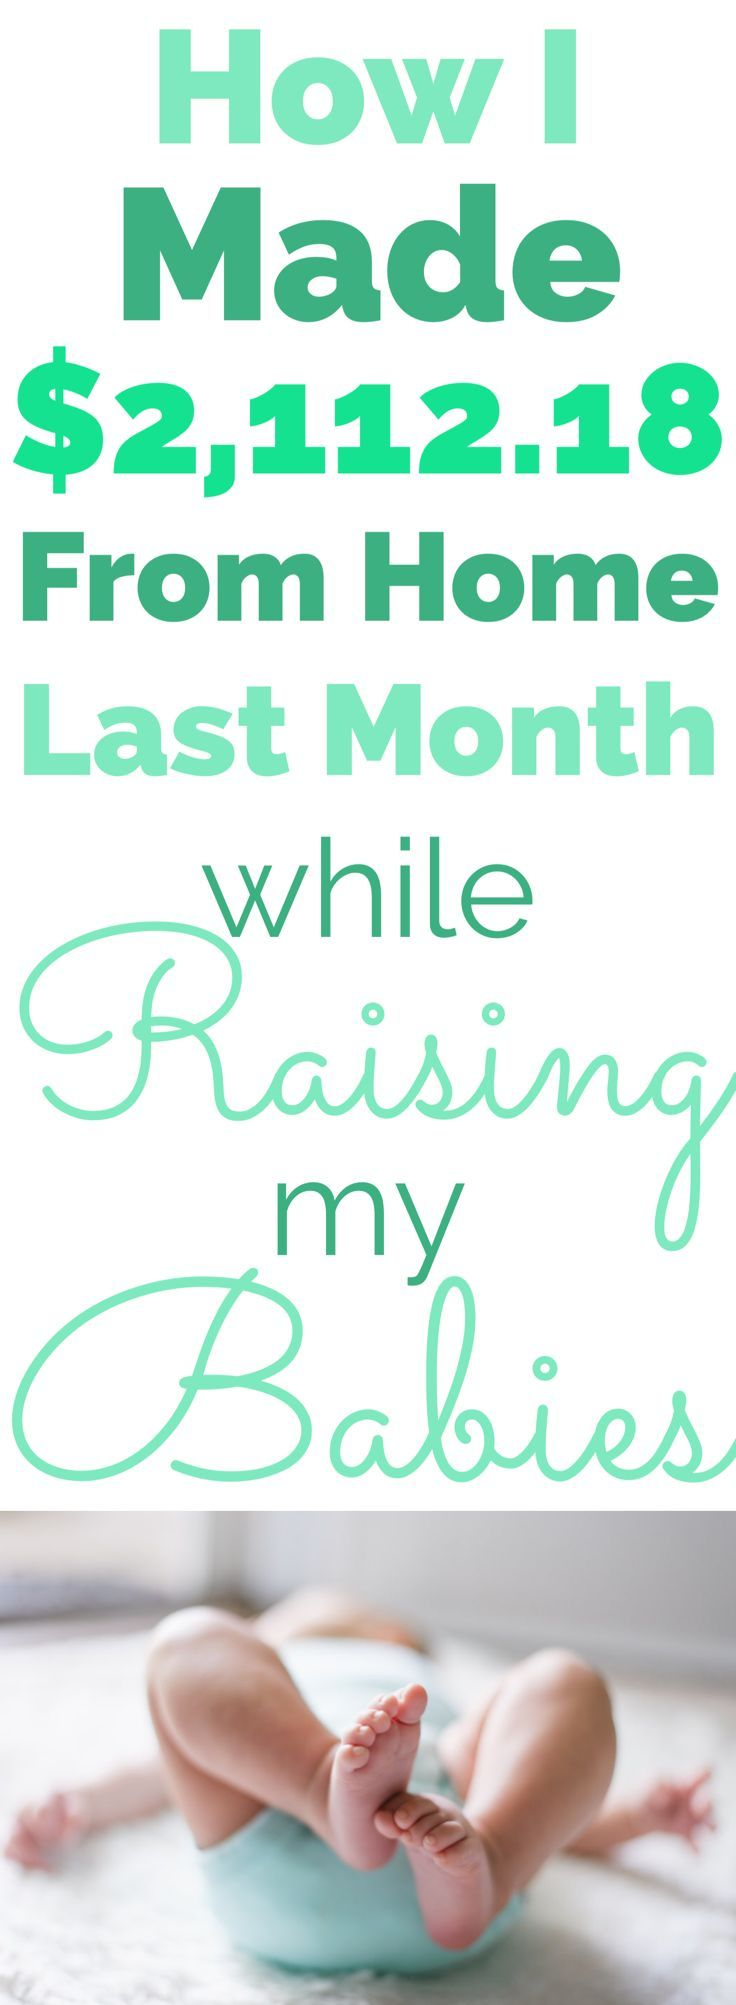 Working from home and having the flexibility to take care of my kids is a dream. Each month I share exactly how I make money from home to help other moms do the same.